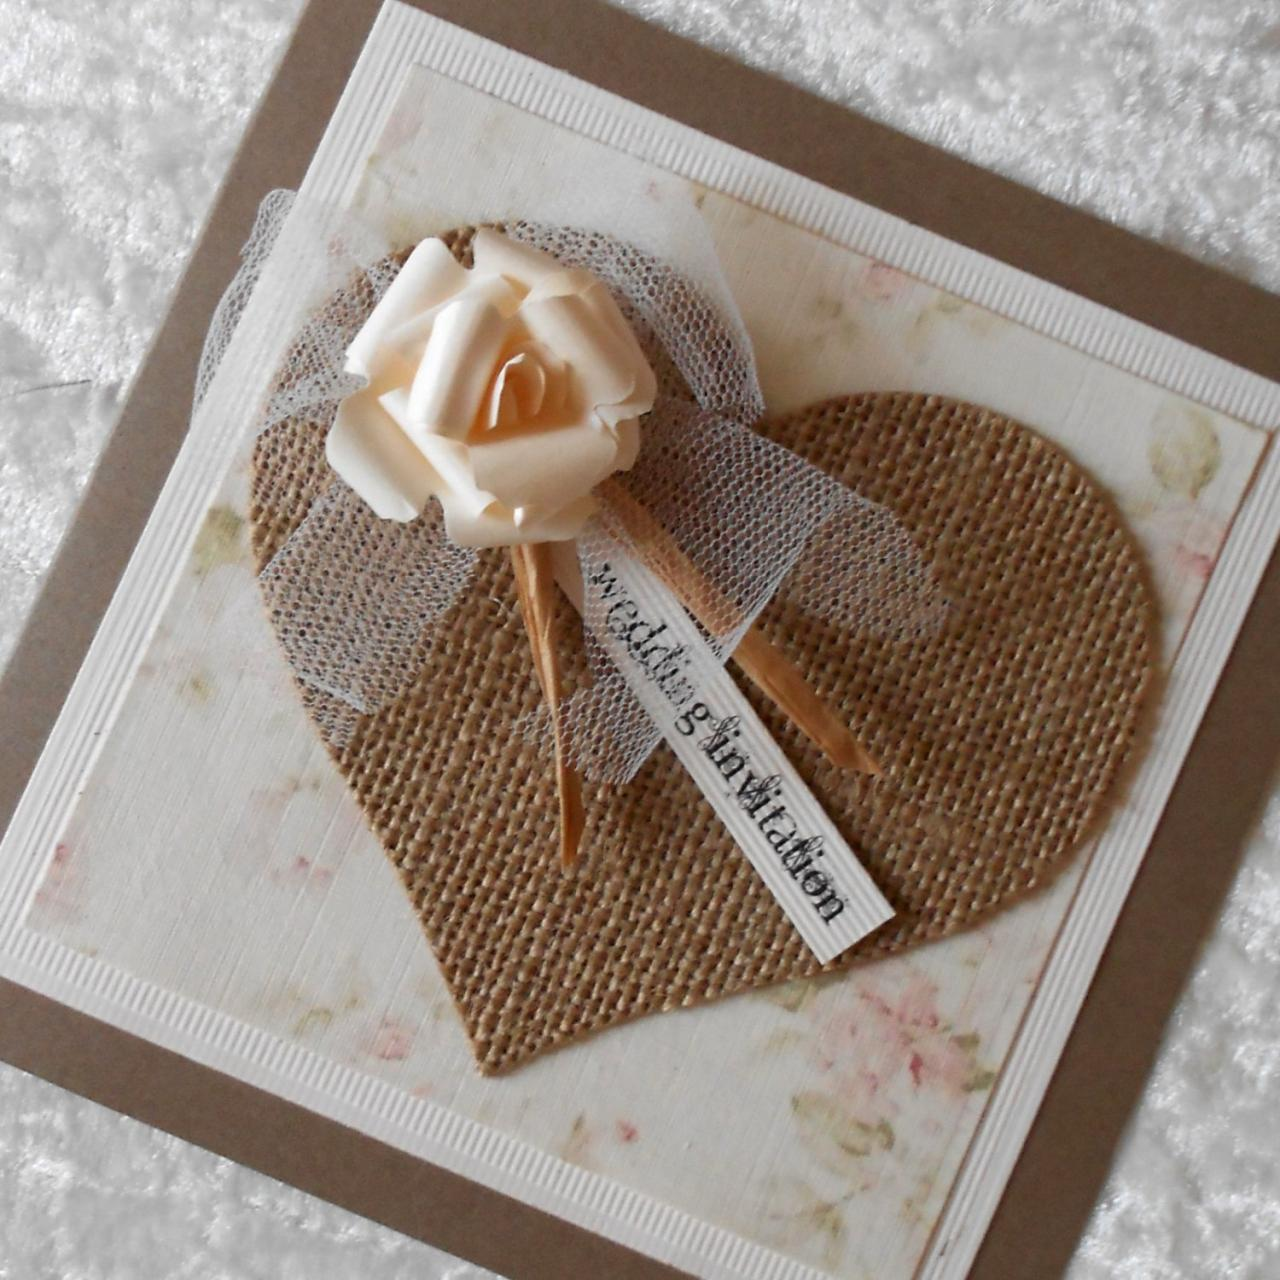 Rustic Wedding Invitations With Burlap Hessian Heart And Tulle – Handmade Rustic Wedding Invitations